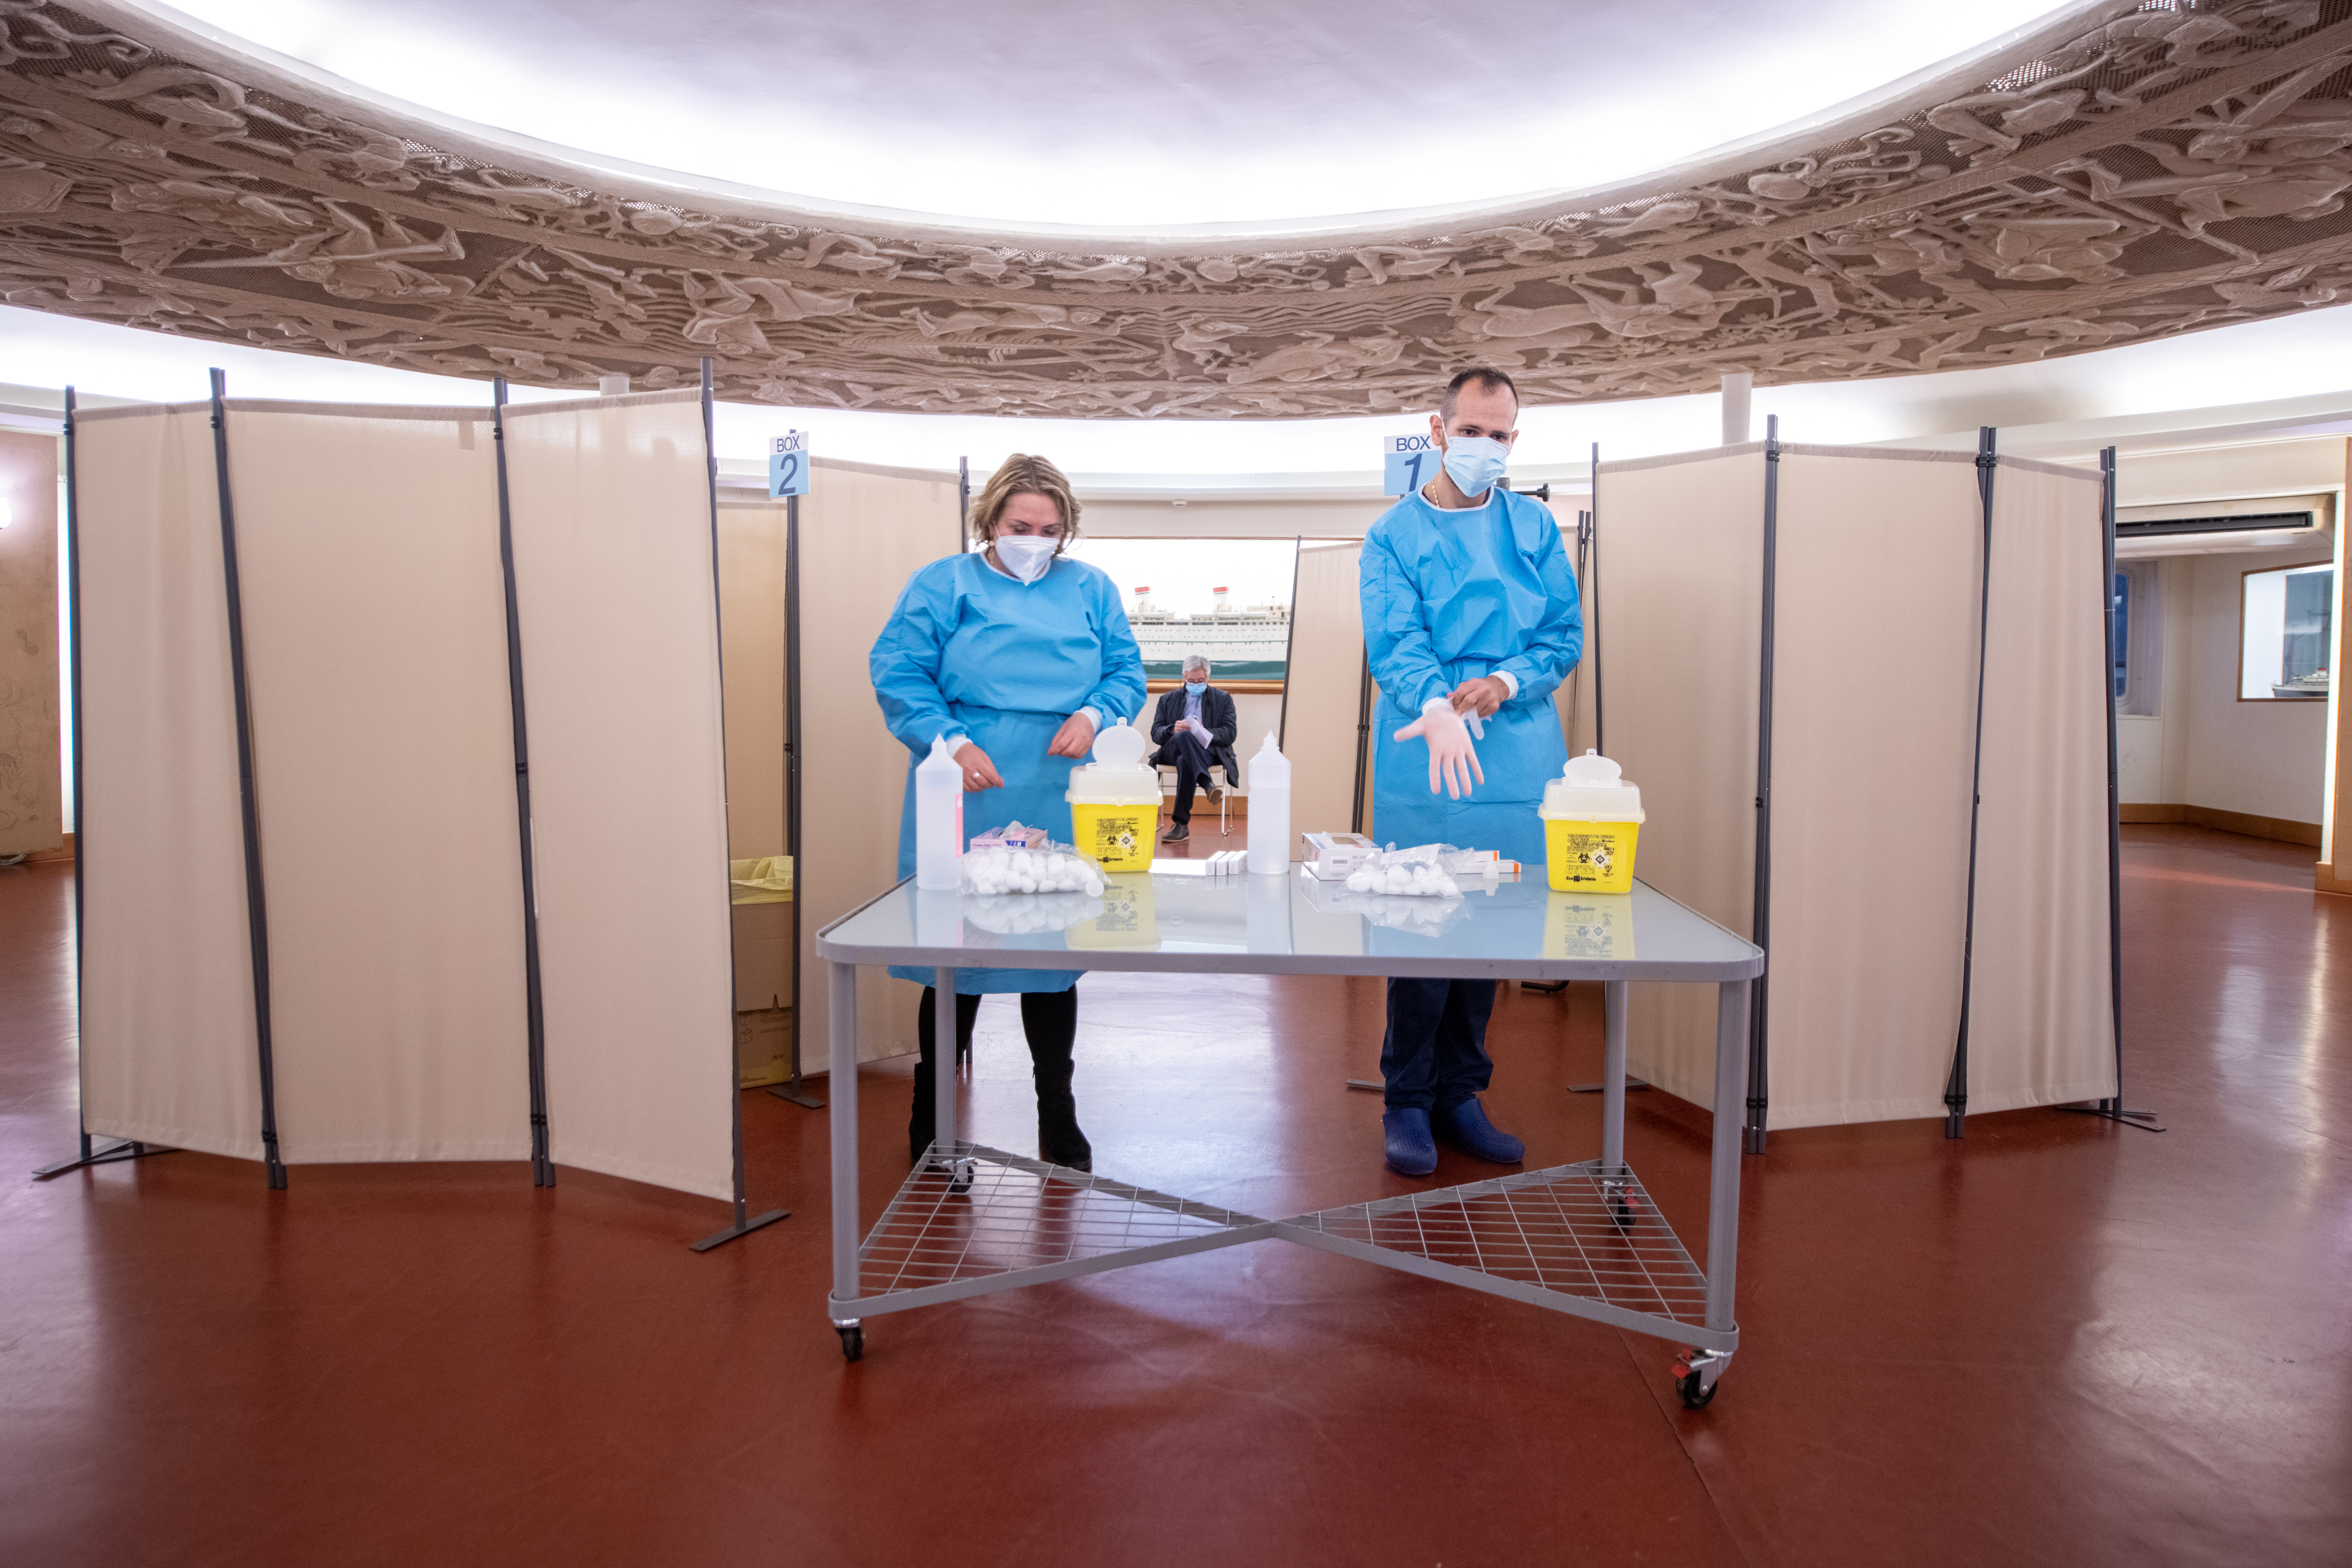 Two people stand at a table in protective gowns, gloves, and masks in preparation for distribution of a flu vaccine.